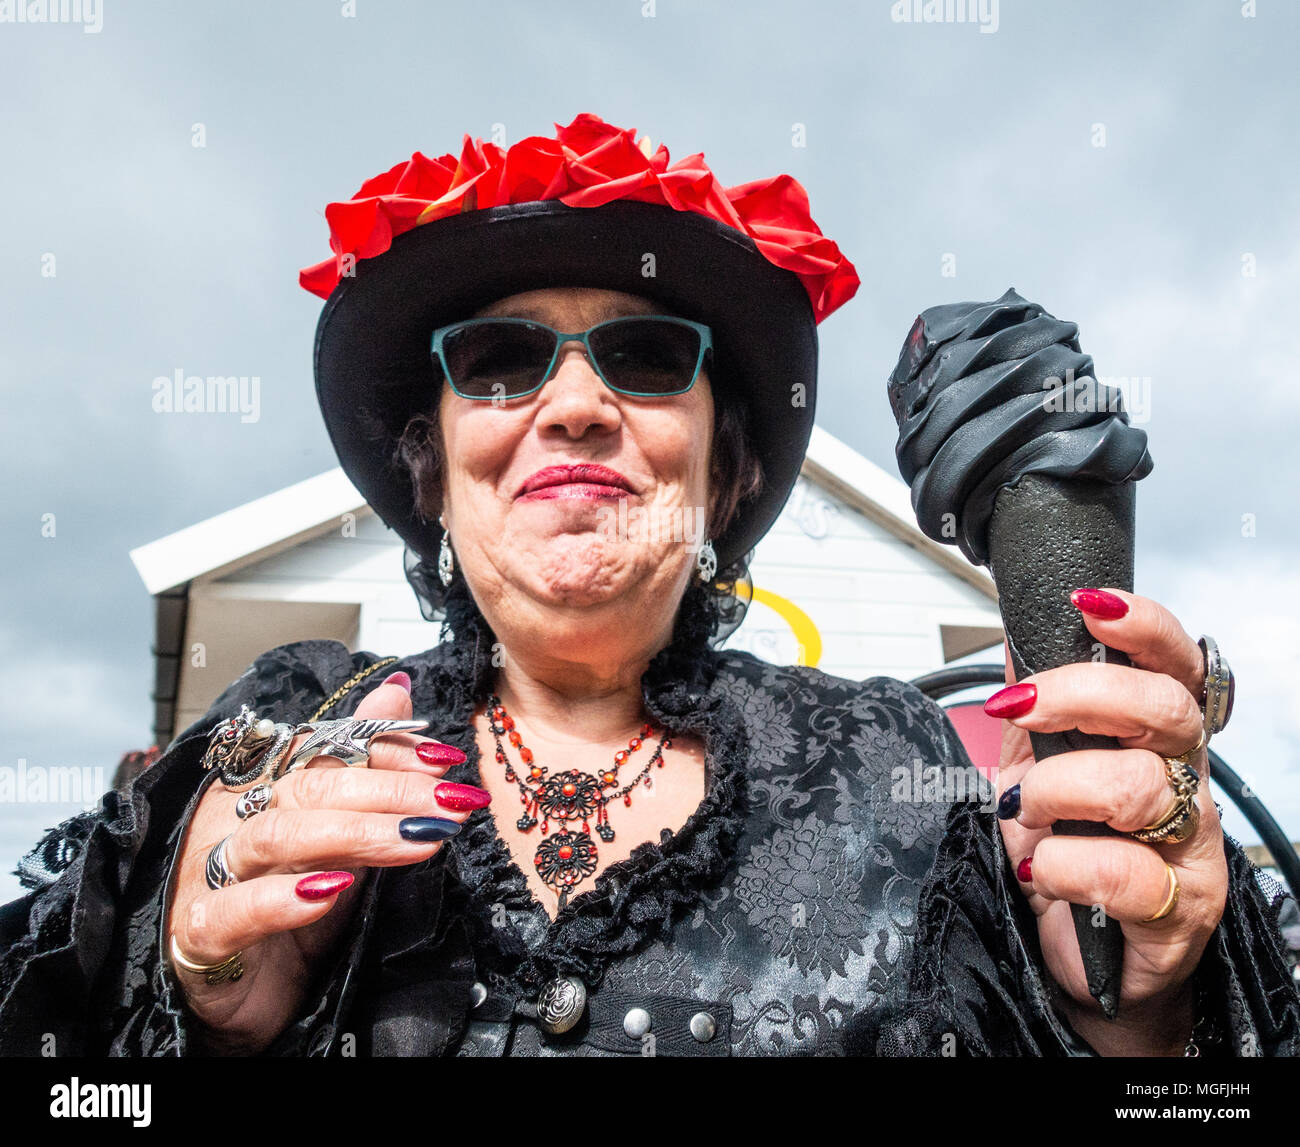 Whitby, North Yorkshire, England, UK, 28th April, 2018. Weather: Bright and chilly in Whitby  as thousands of Goths and Steampunks descend on the Yorkshire coastal town for  the famous Whitby Goth weekend: Despite the chilly weather, The jet black 'Whitby Jet' ice cream seemed to be the flavour of the day among Goths. Credit: ALAN DAWSON/Alamy Live News - Stock Image